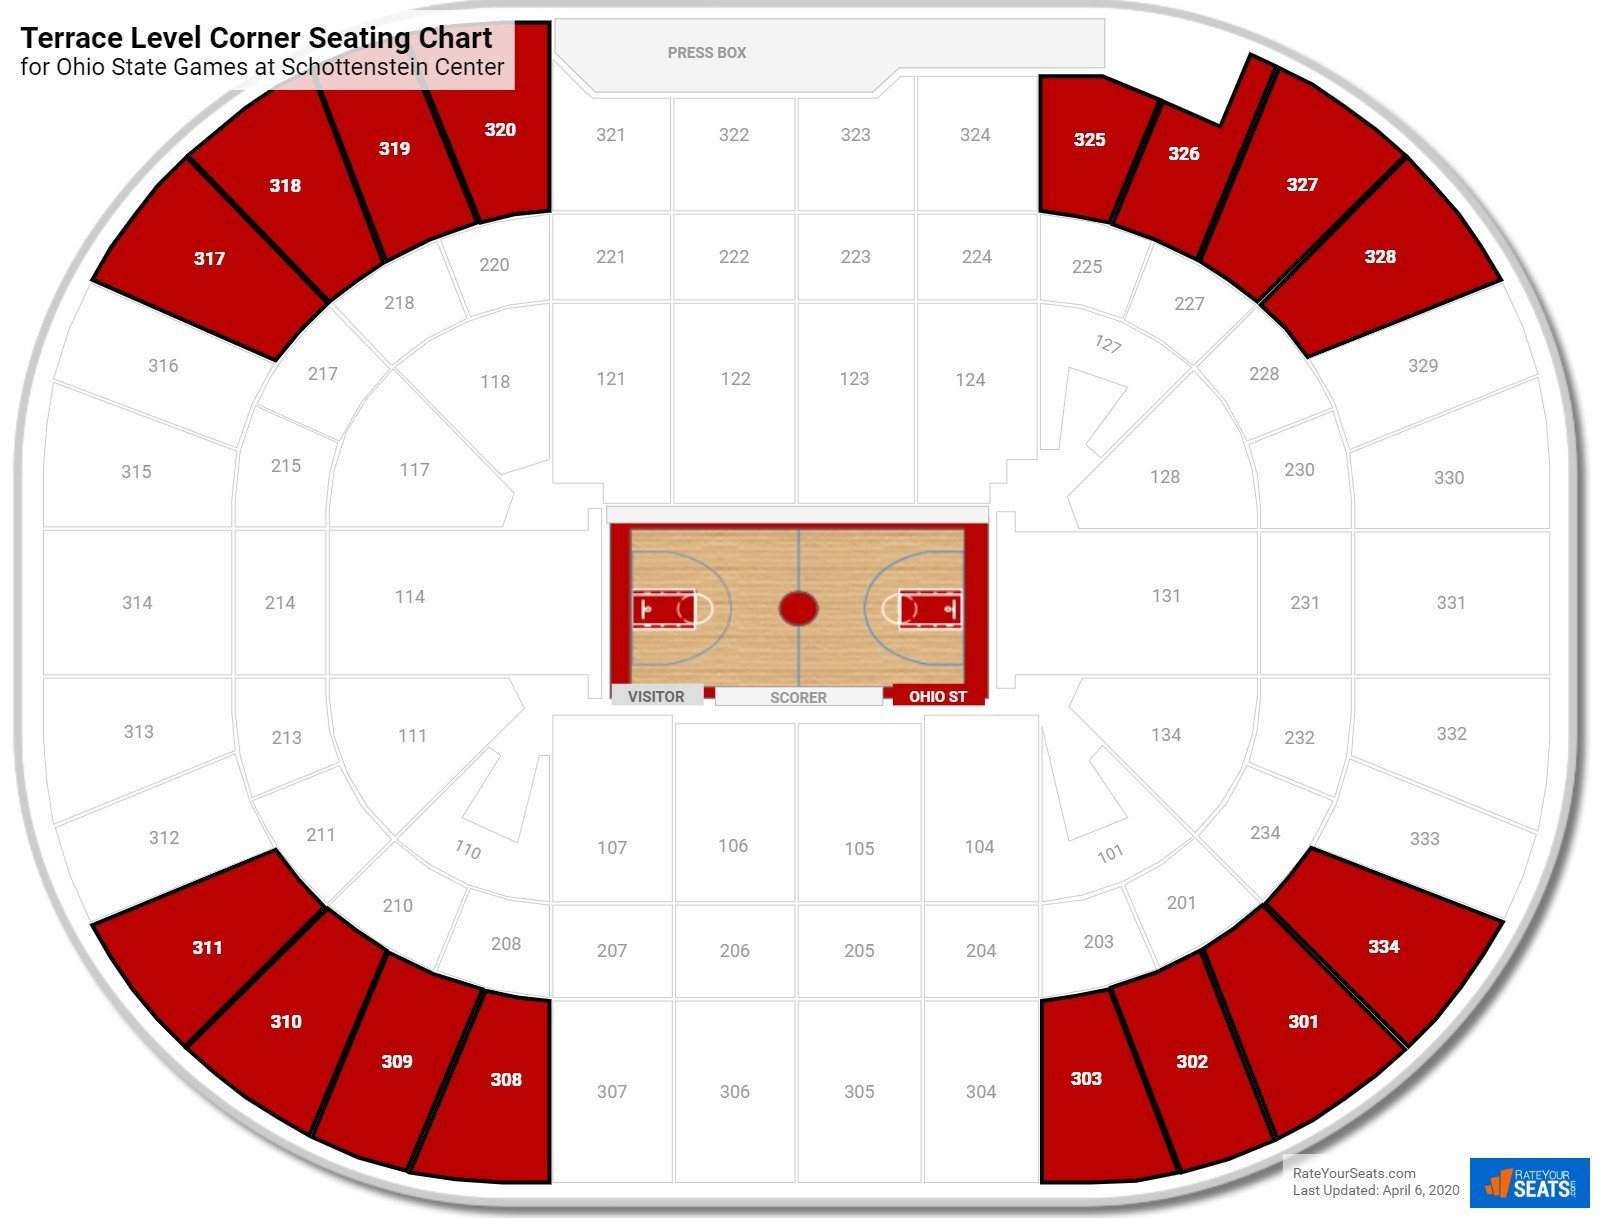 Schottenstein Center Terrace Level Corner Seating Chart